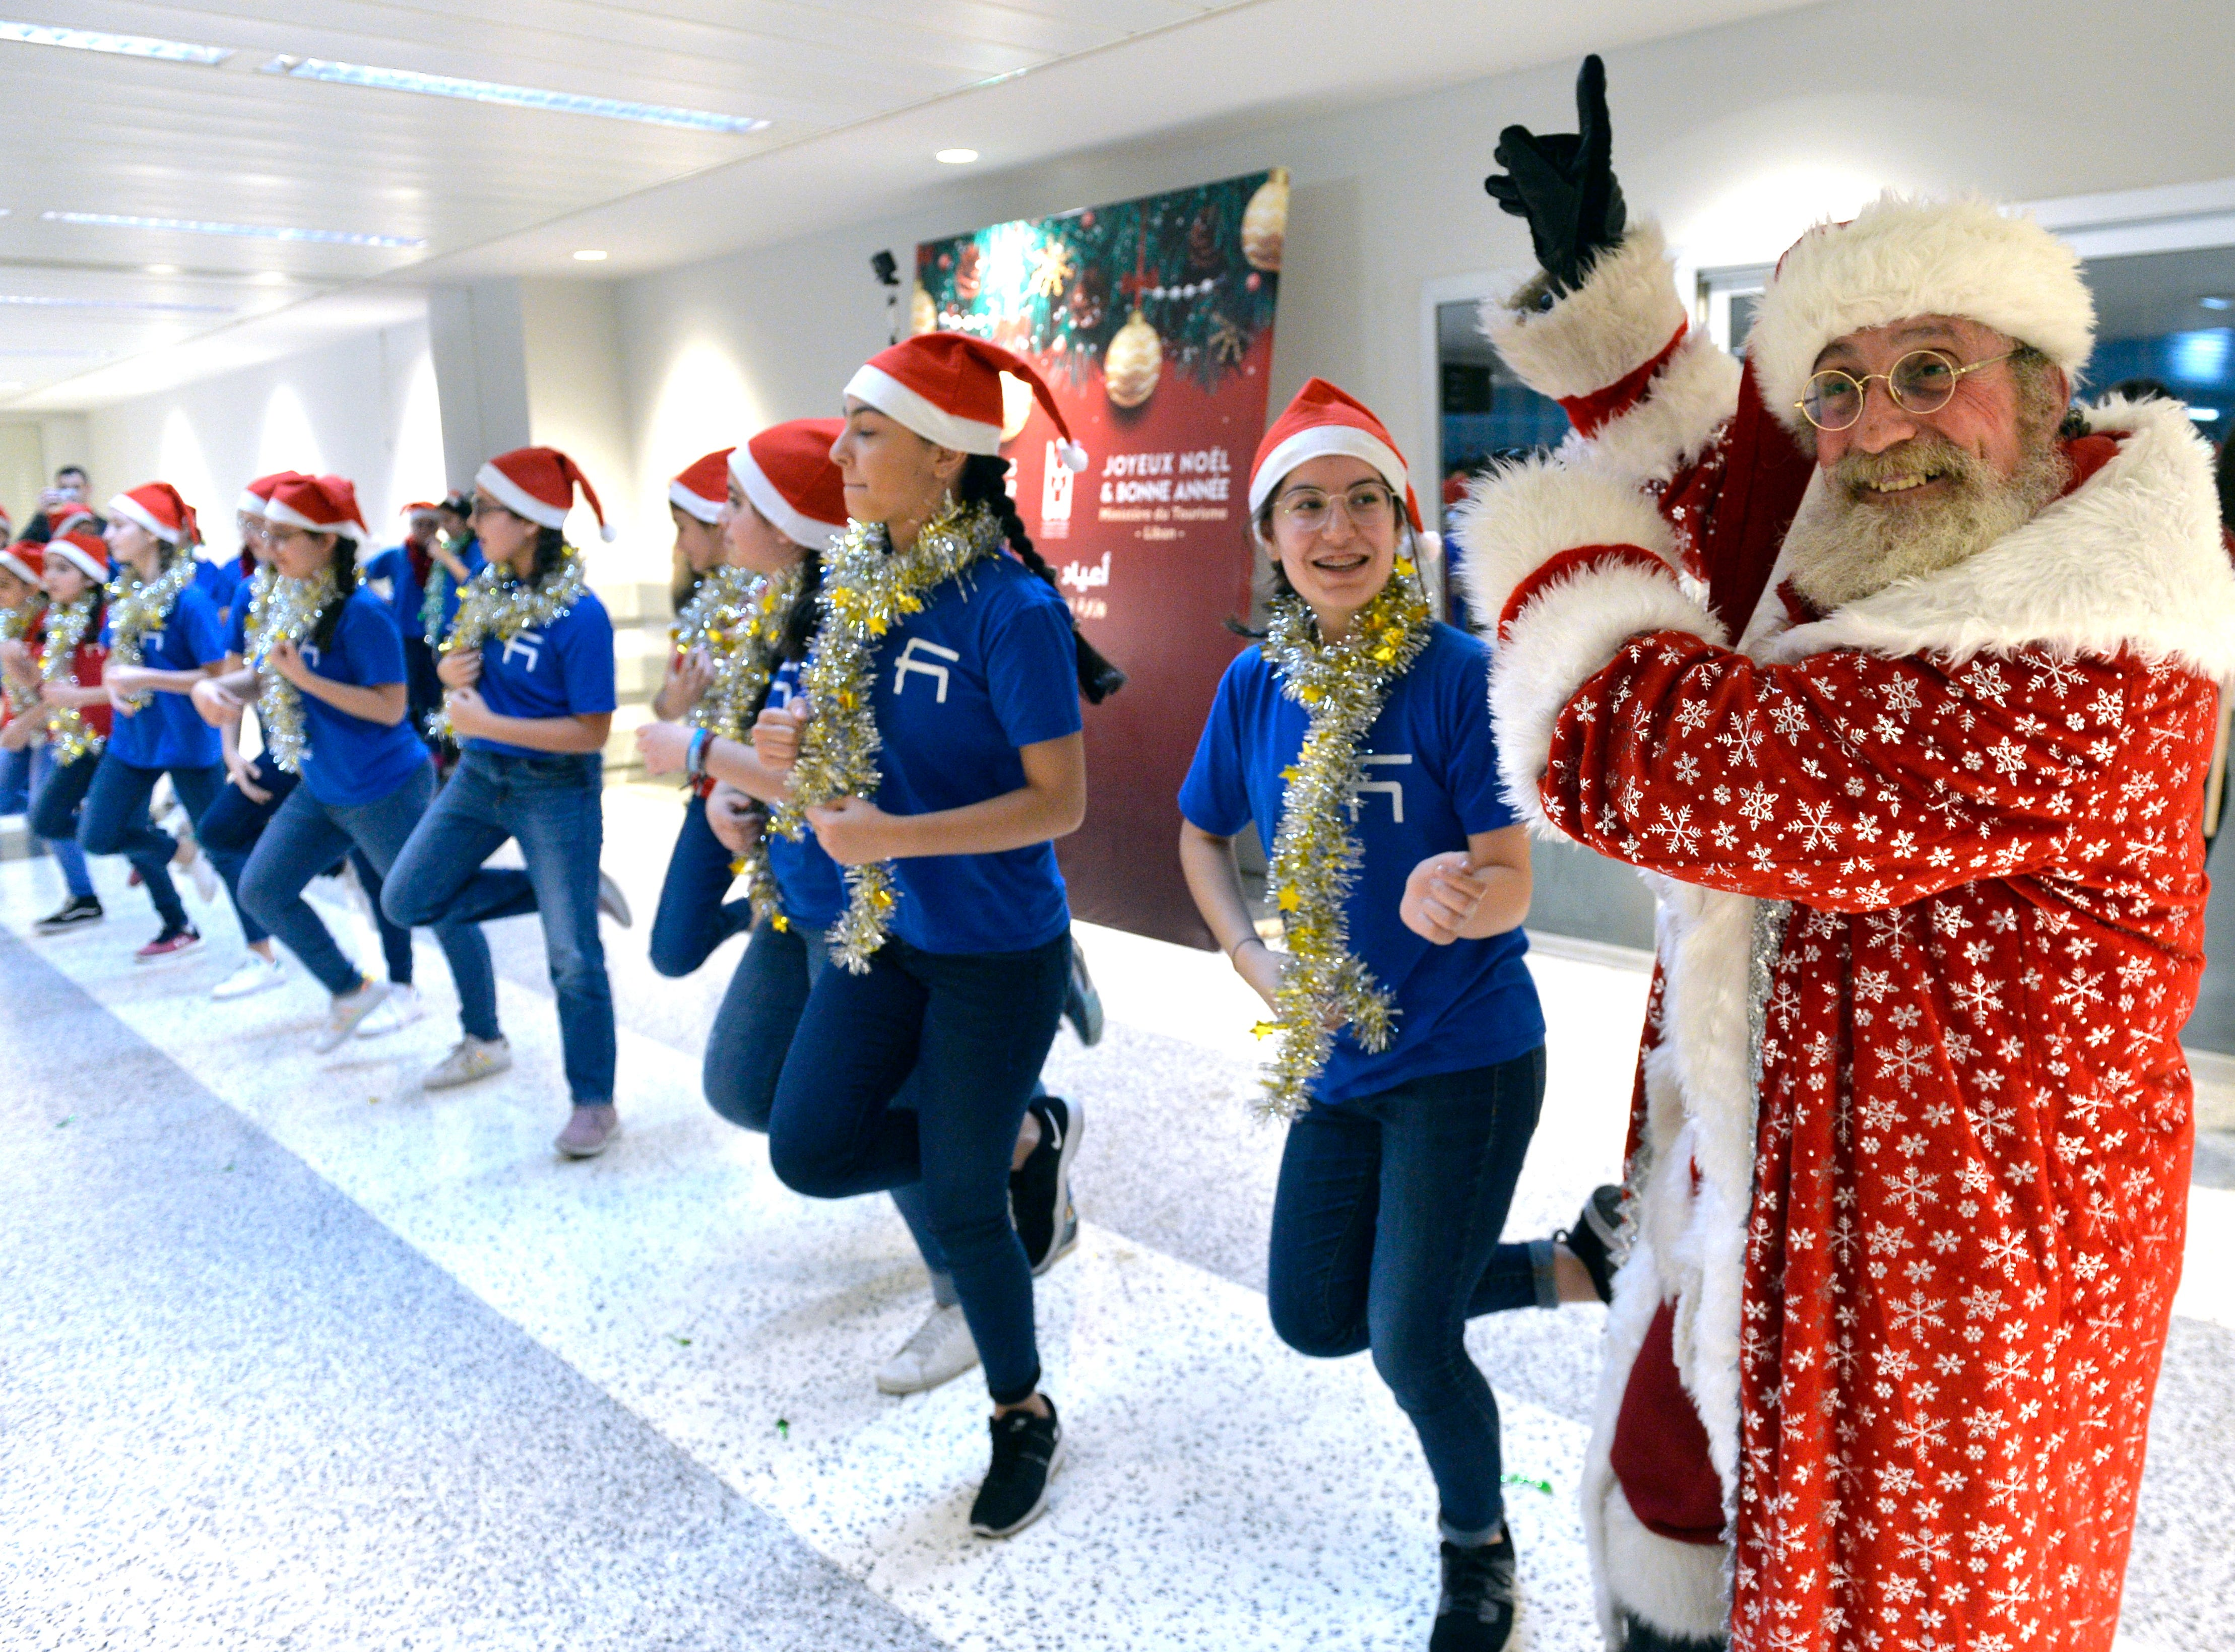 A man from Armenia dressed as Santa Claus dances with Lebanese and Armenian children upon his arrival at Rafik Hariri international airport in Beirut, Lebanon on Dec. 25, 2018. The man arrived in Beirut to celebrate the Armenian Christmas on January 6, 2019.